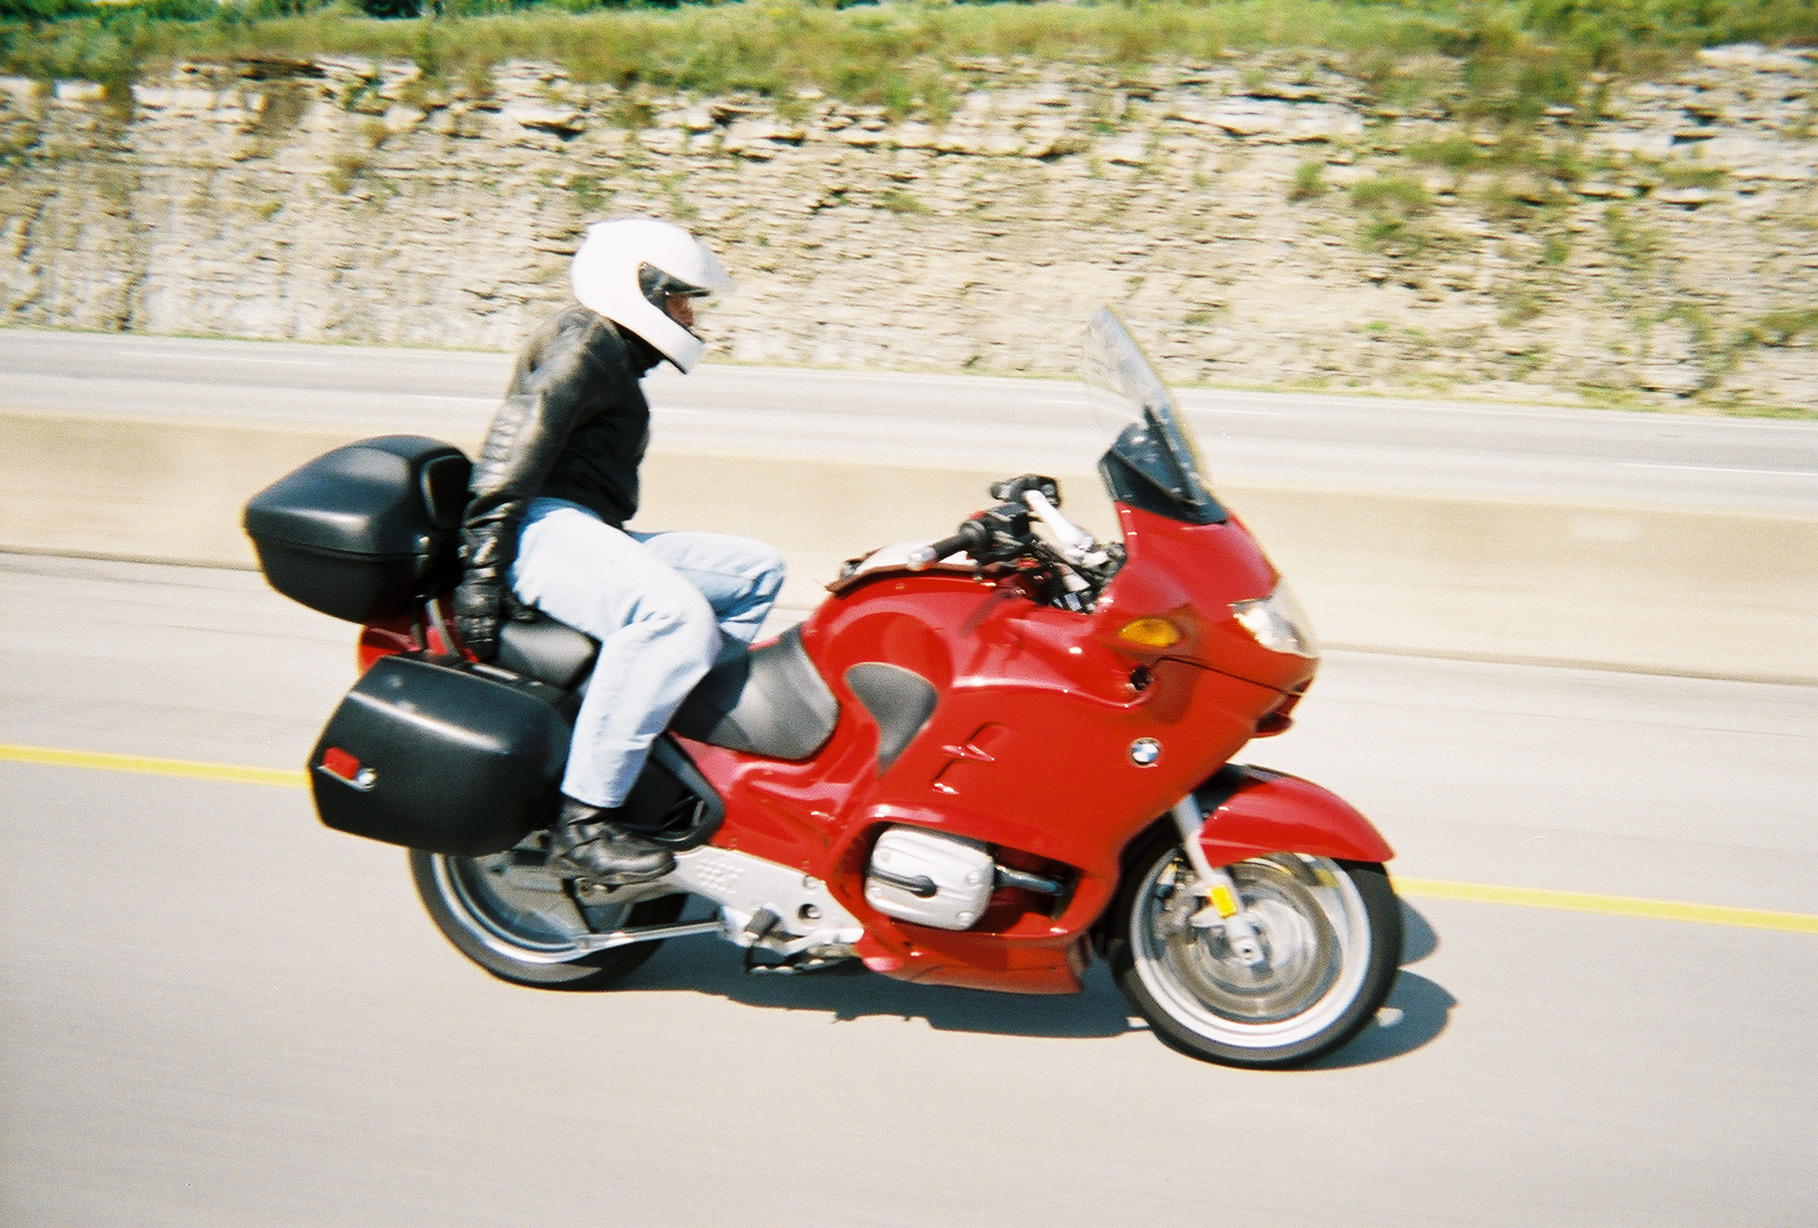 Allan Howard on his BMW- do as he say's, not as he rides.